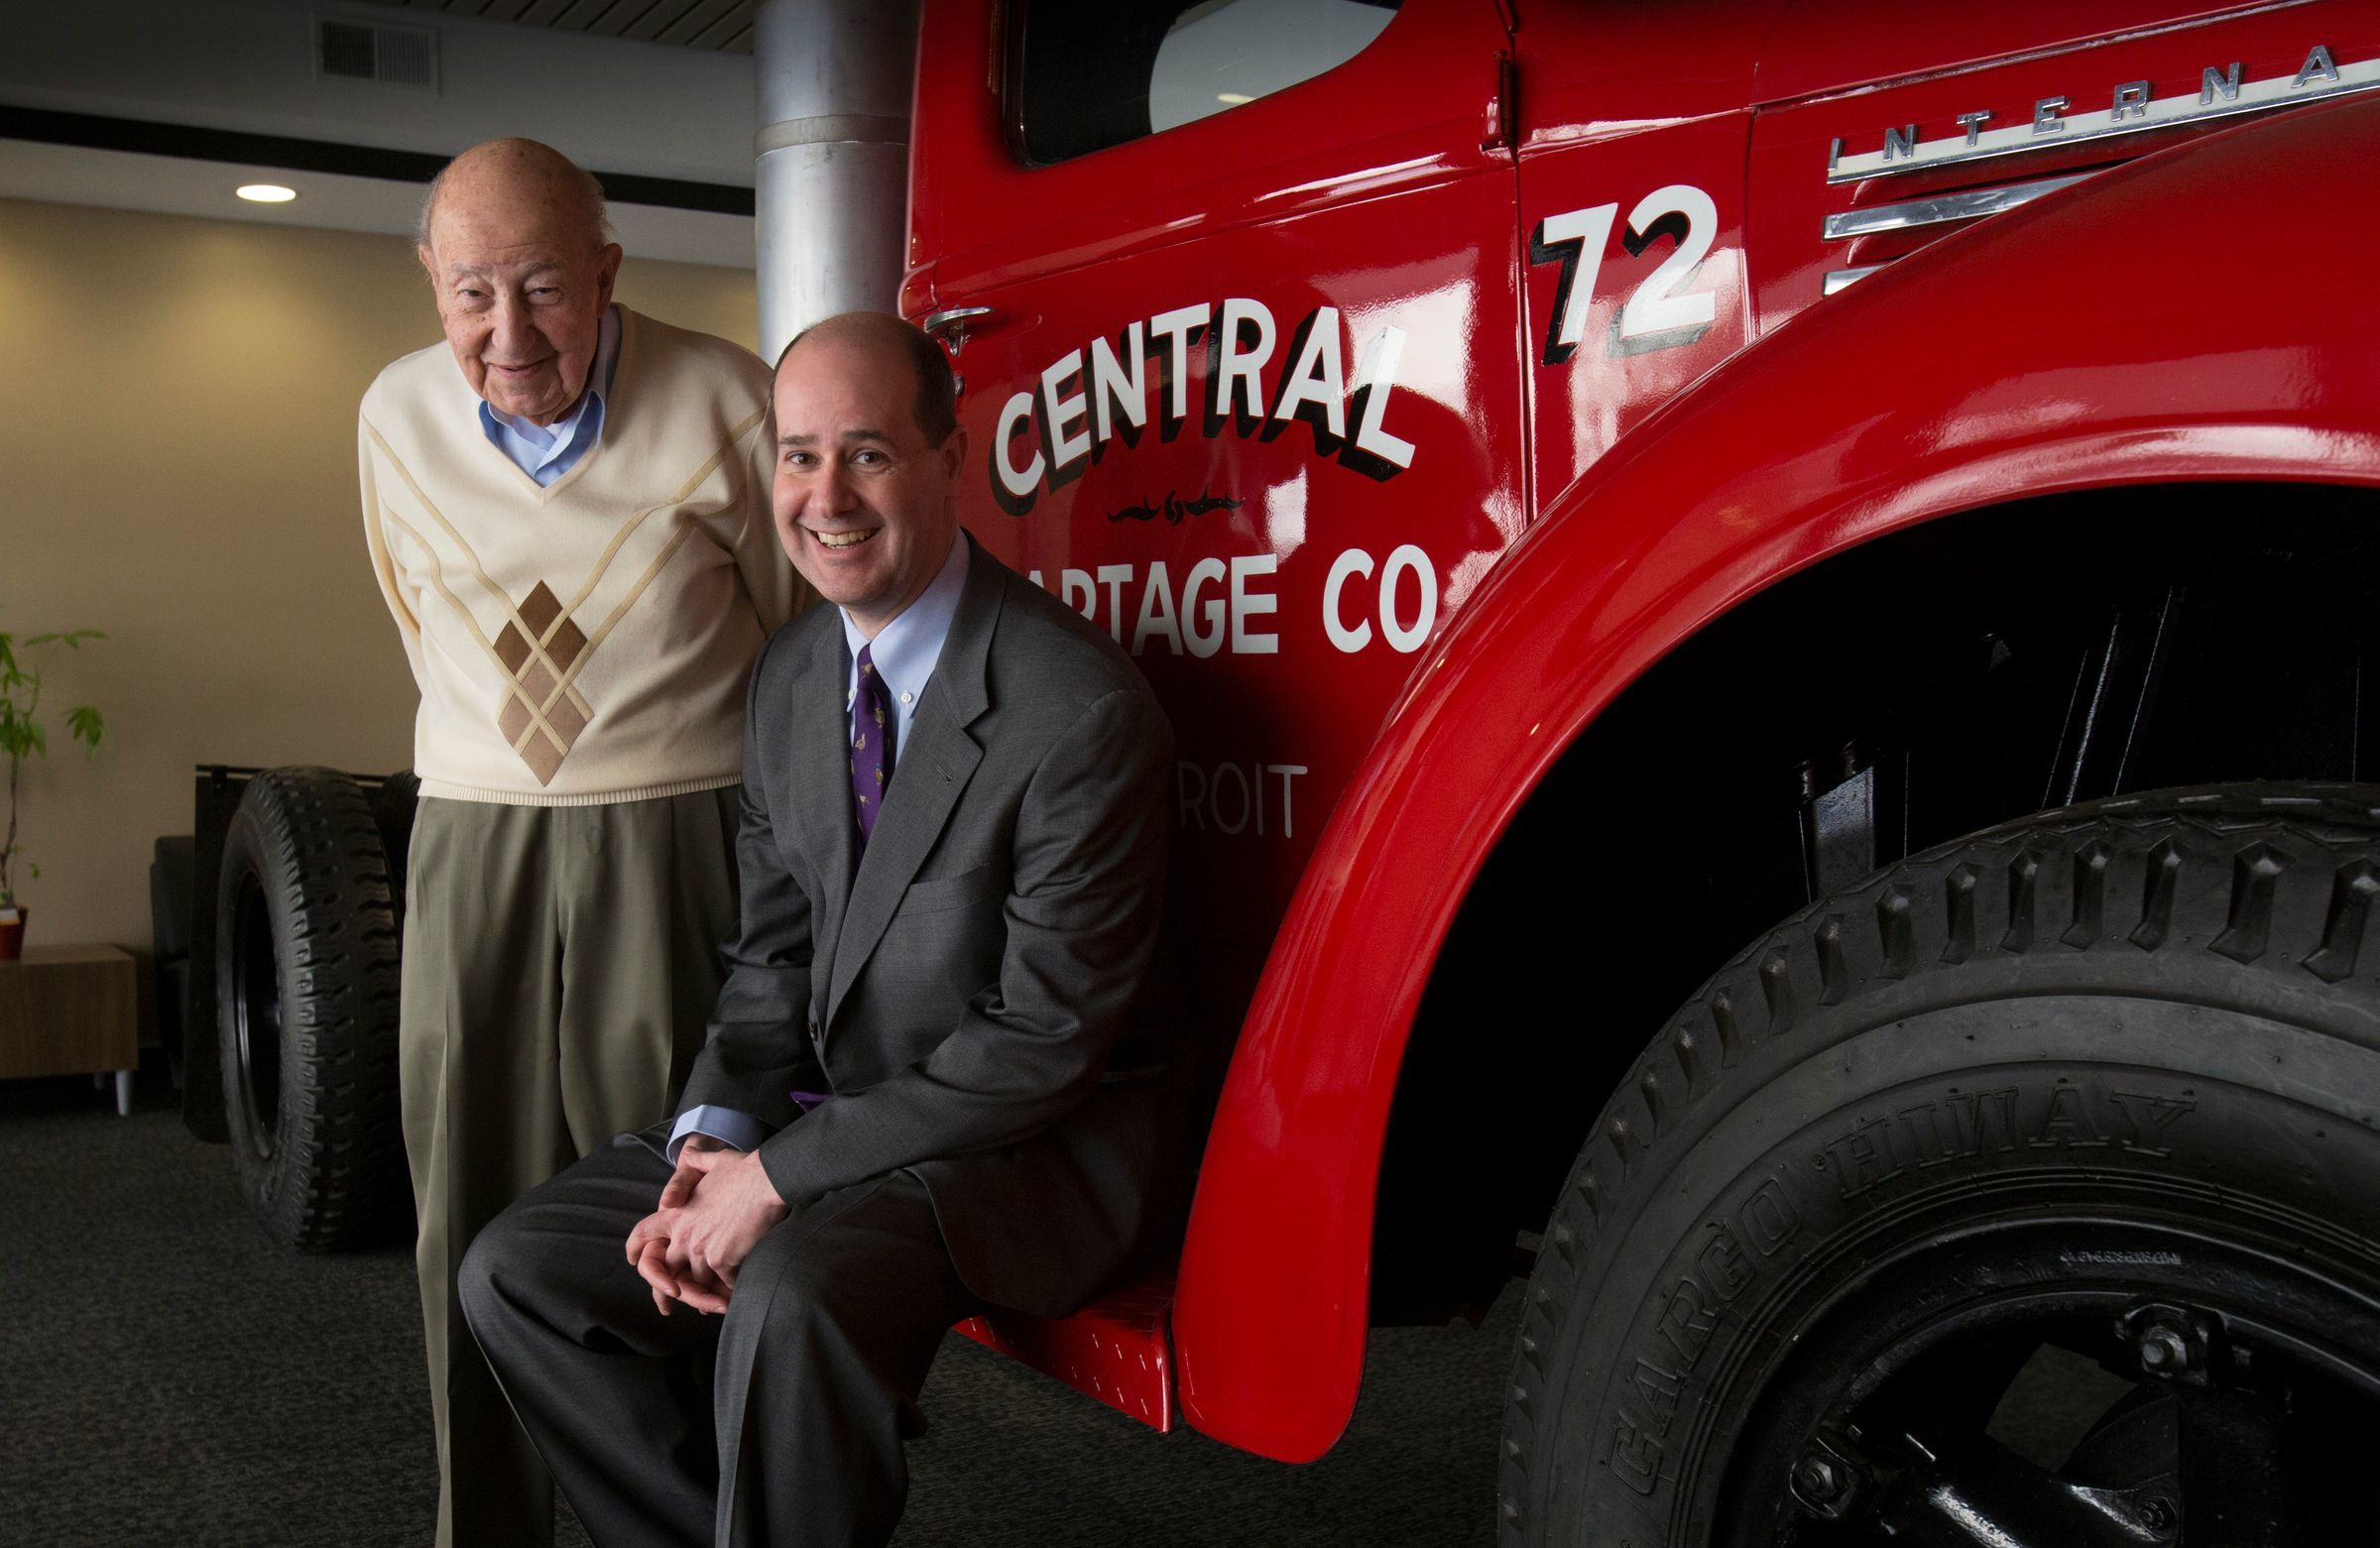 """Trucking magnate Manuel """"Matty"""" Moroun and son Matthew Moroun are photographed at their Central Transport headquarters in Warren on Feb. 13, 2018."""